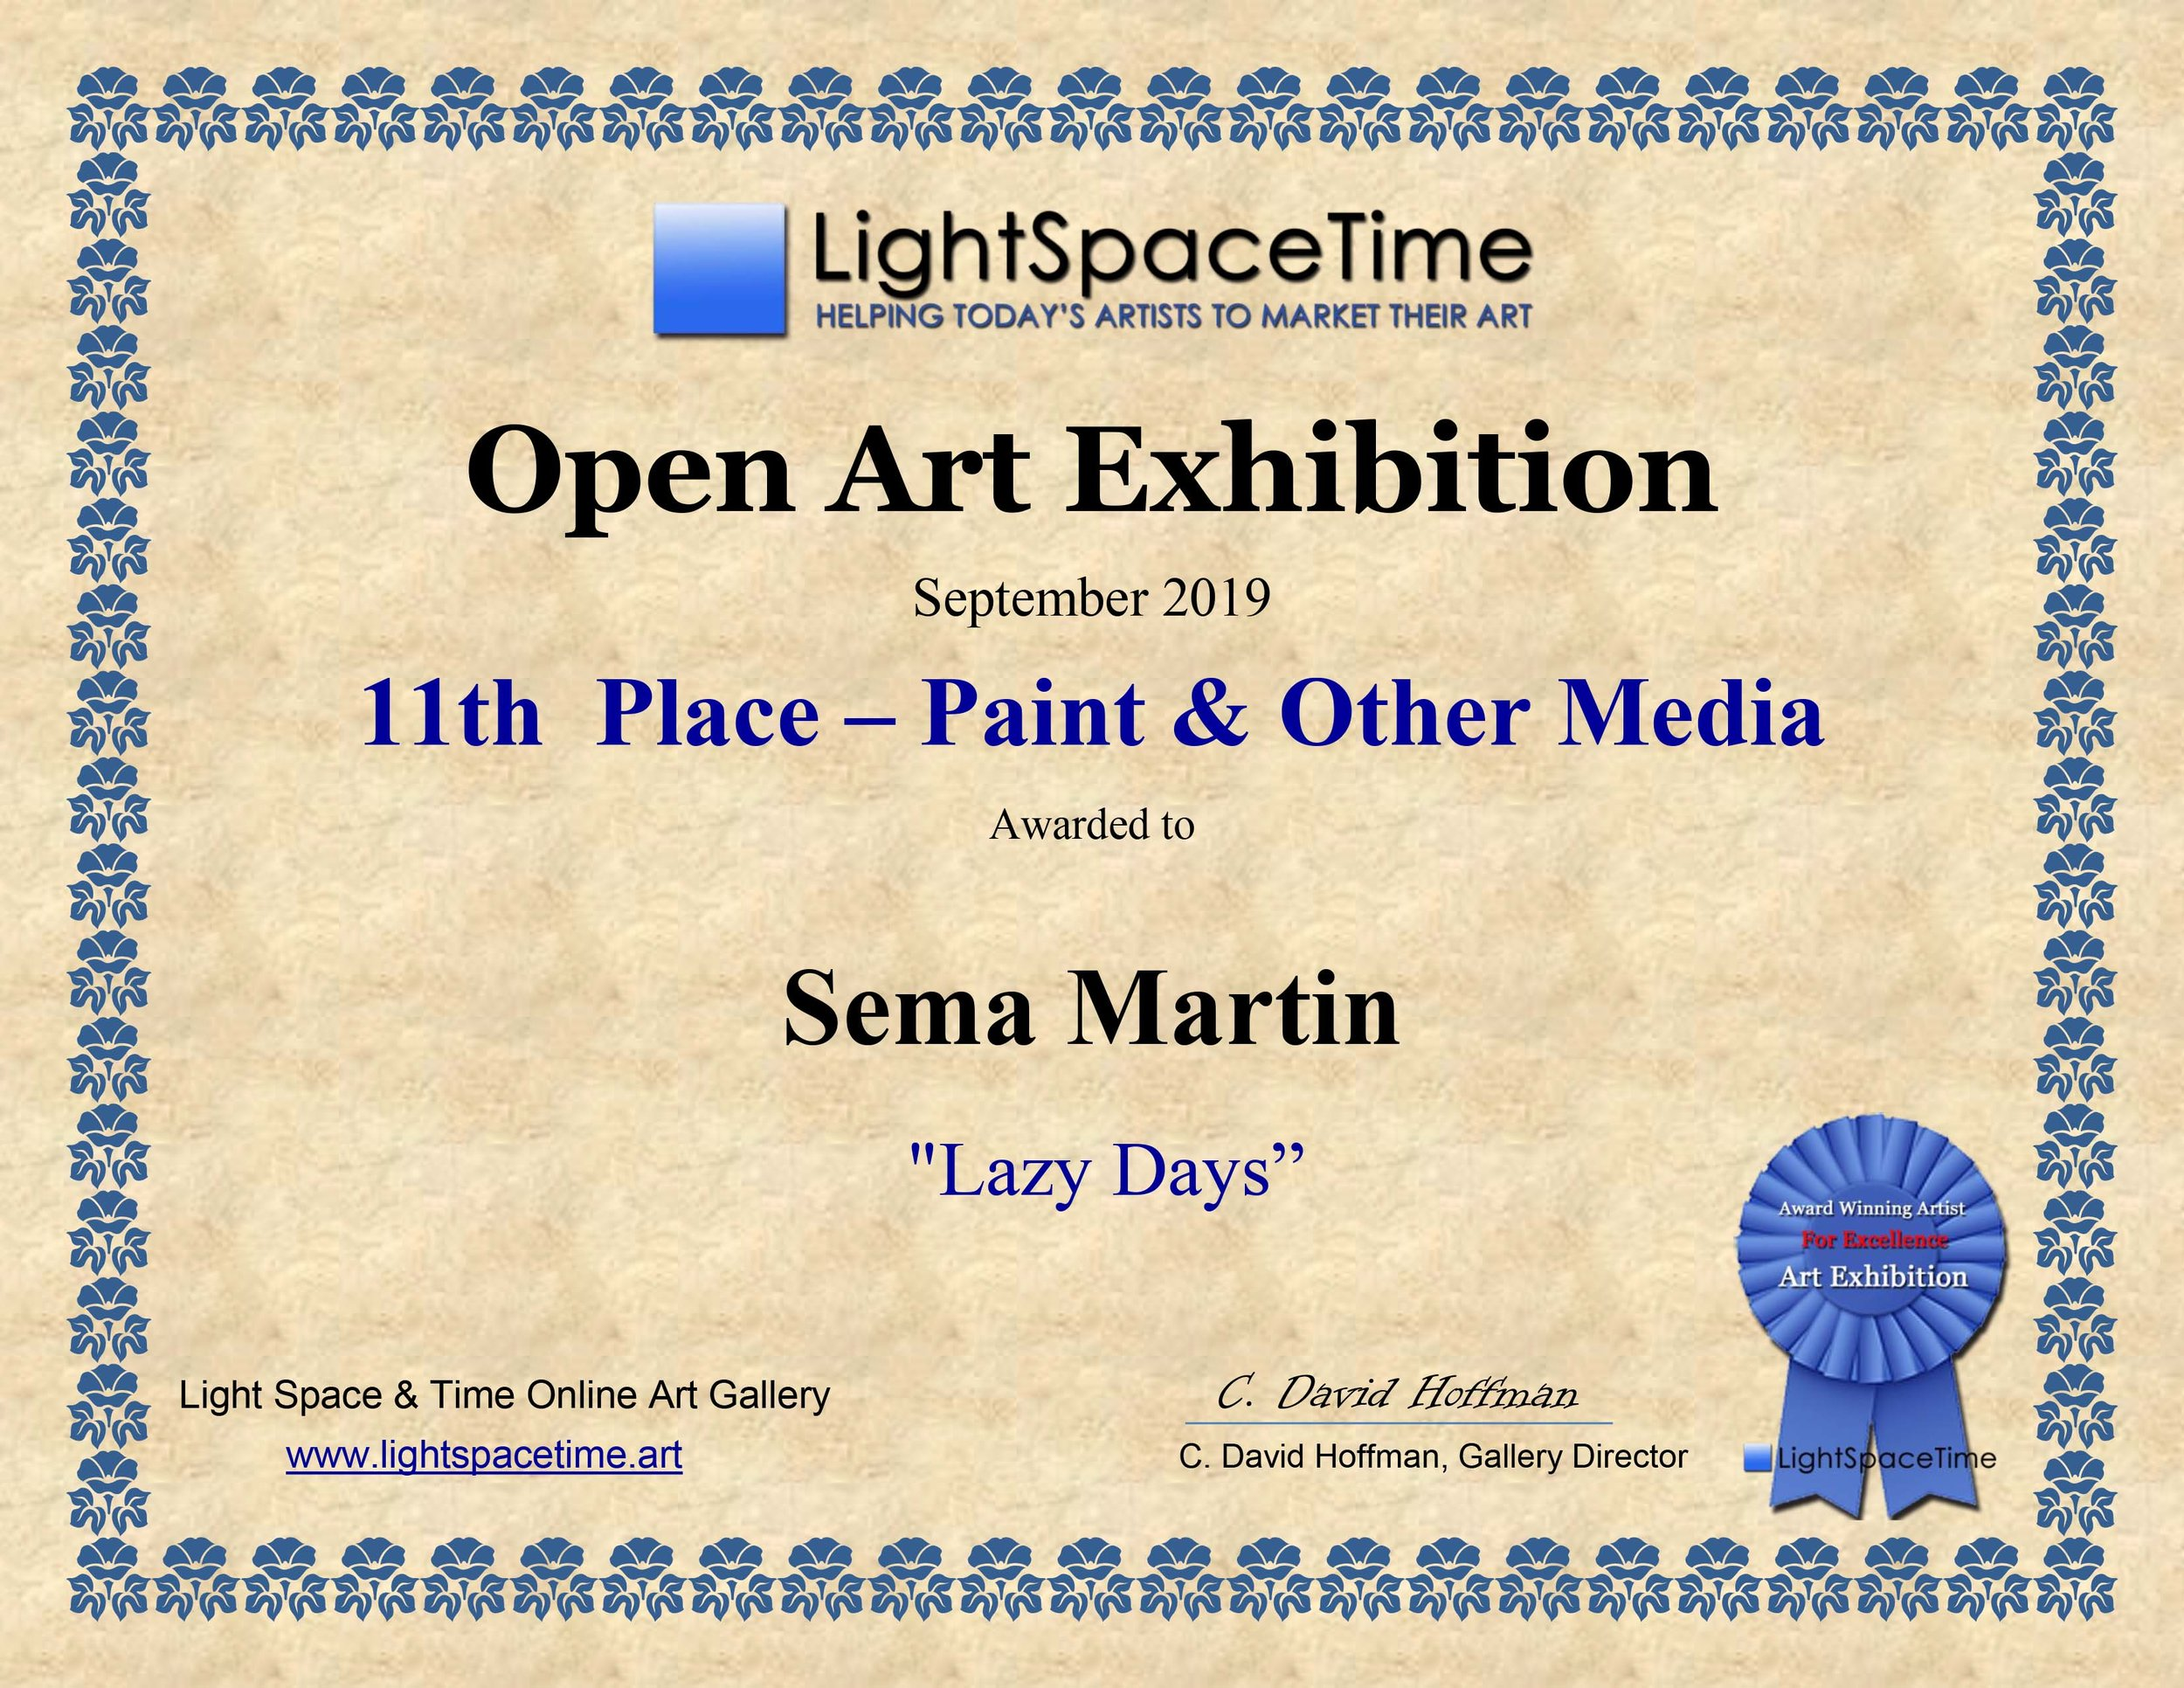 'Lazy Days' by Sema Martin Light Space Time 9th Open Exhibition 11th Place